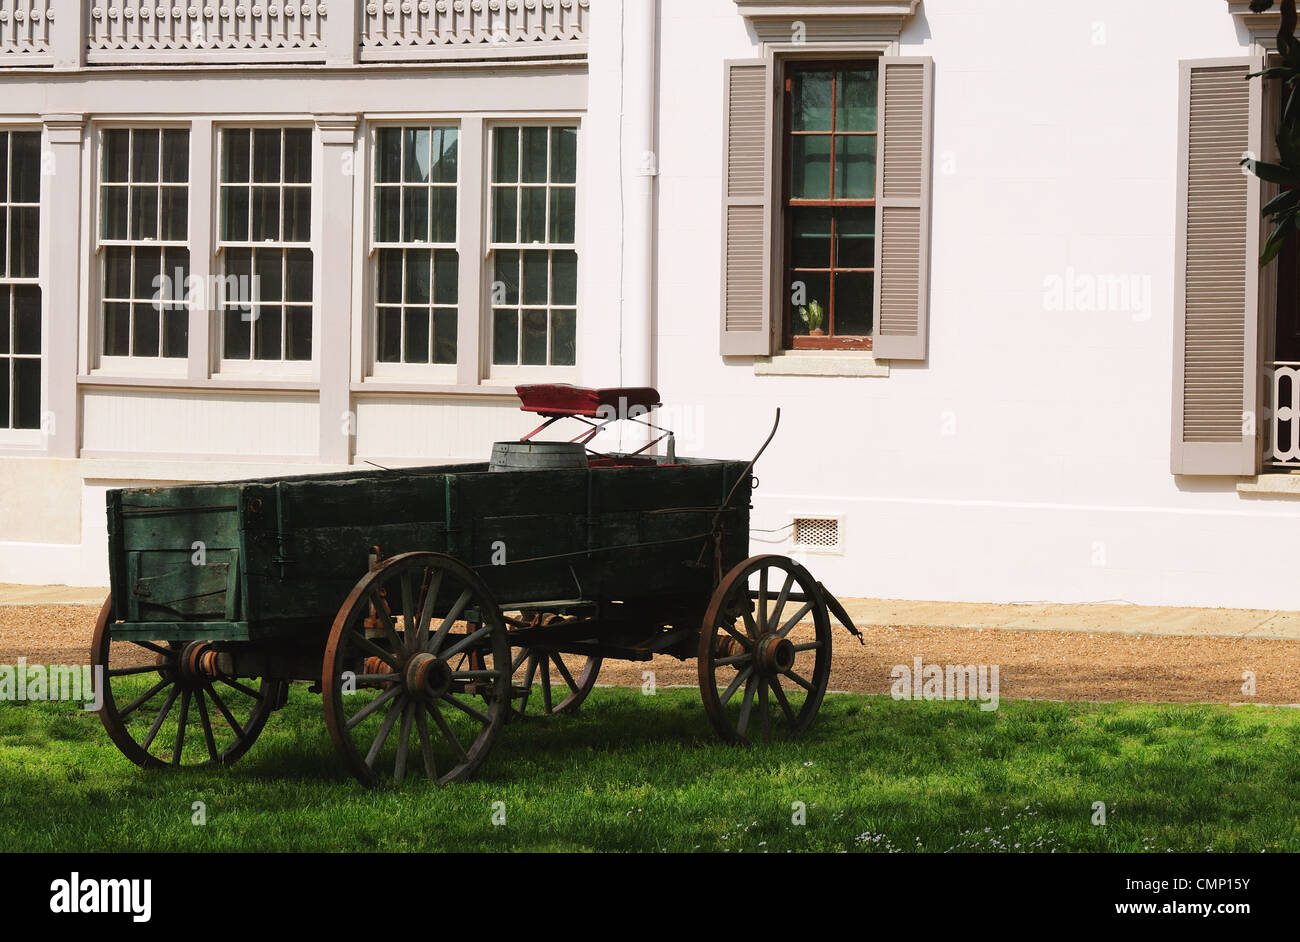 19th century wagon at the Belle Meade Plantation - Stock Image